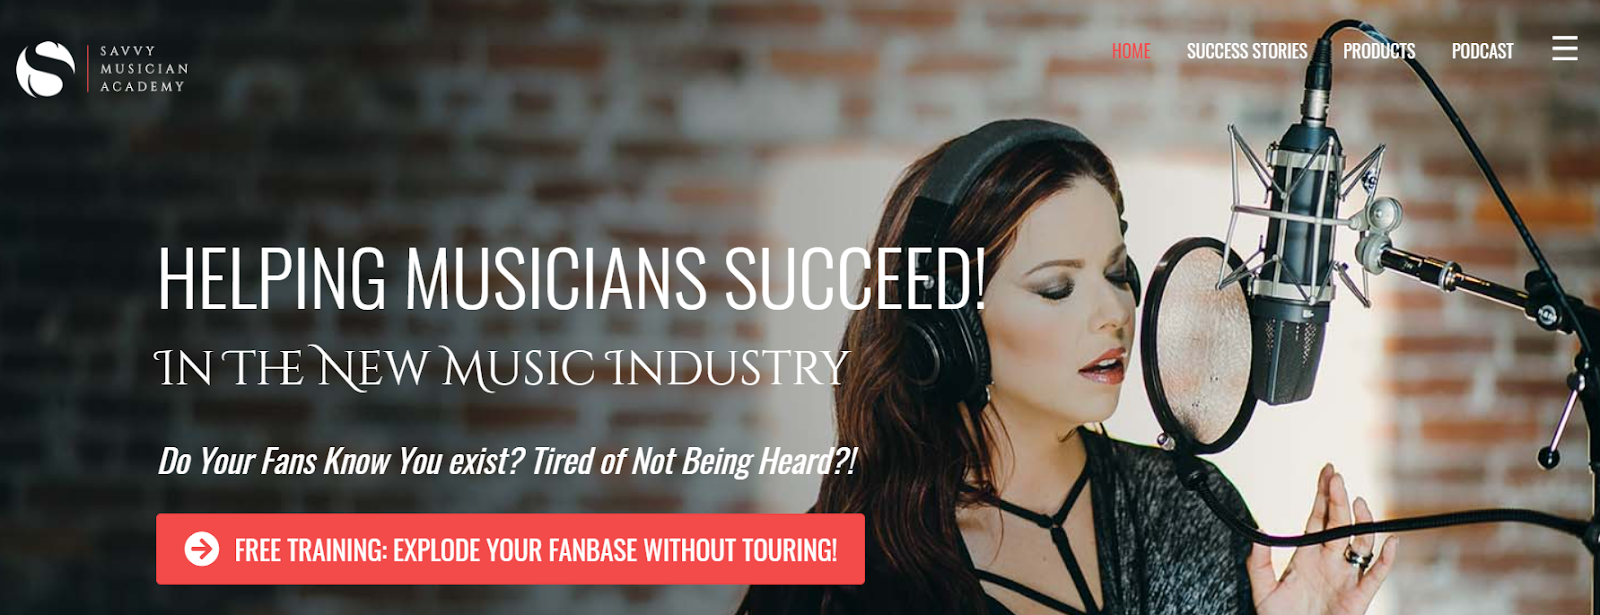 Screenshot of the Savvy Musician Academy website with a photo of a young woman singing